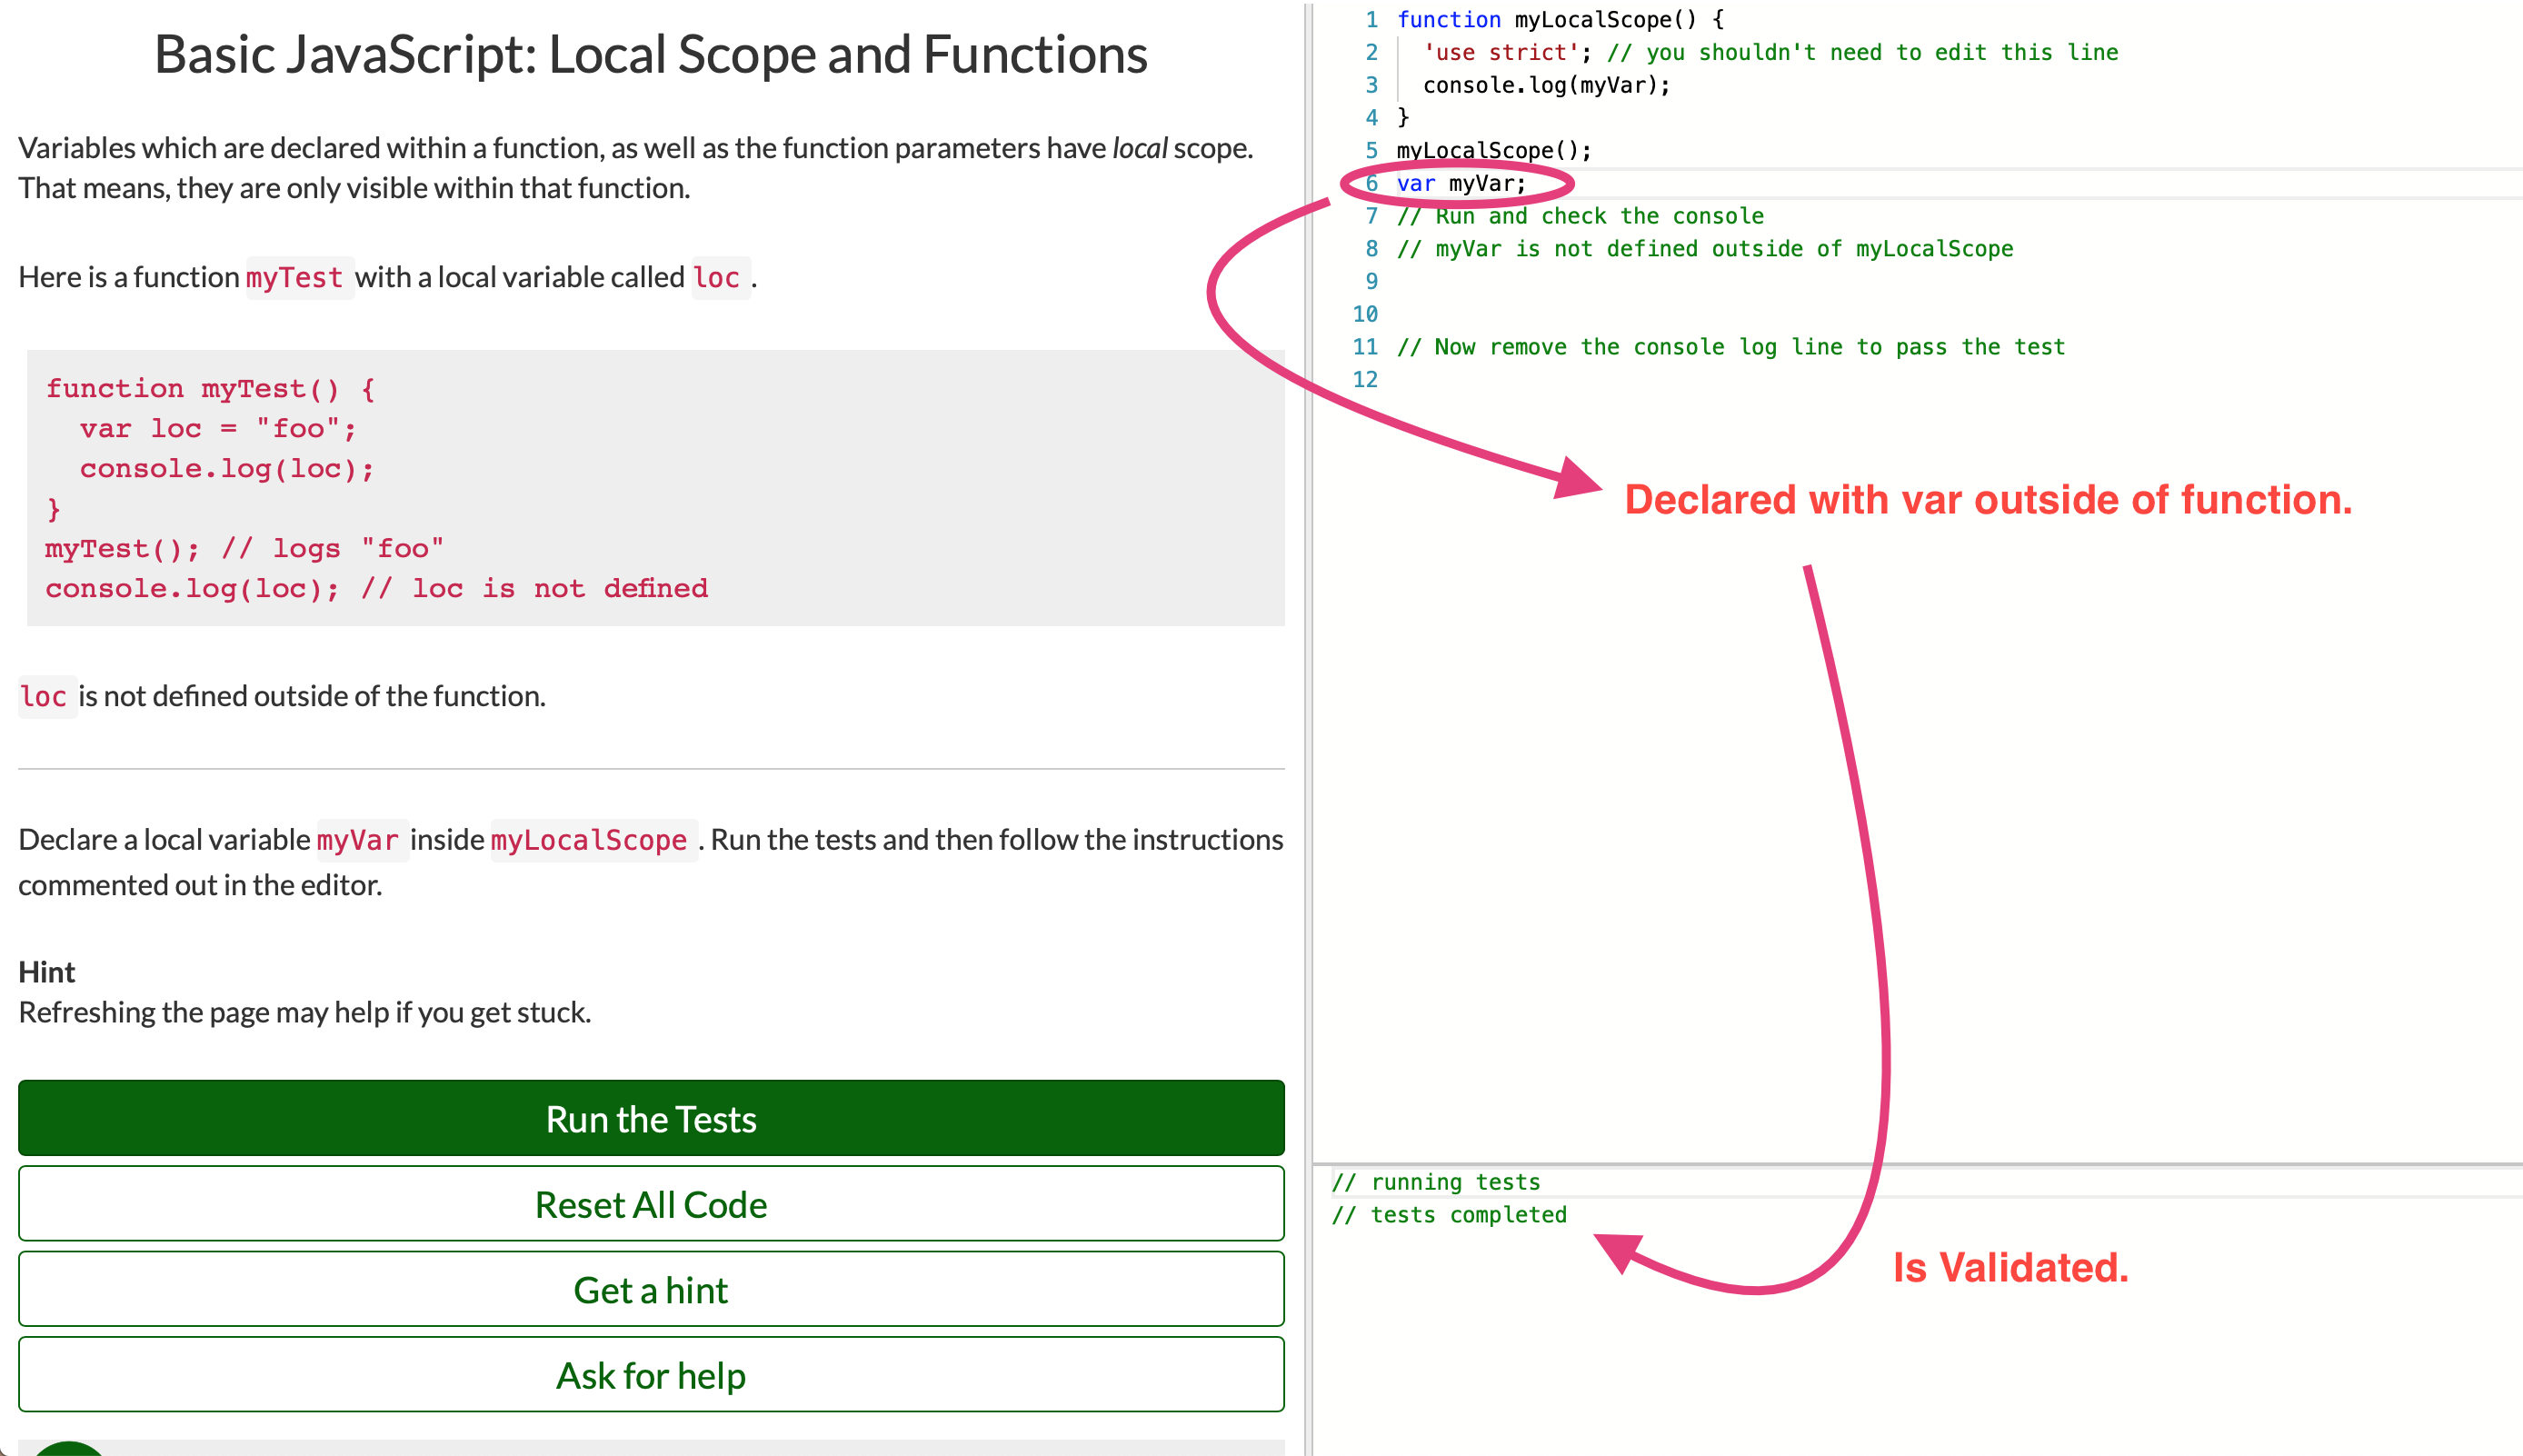 Basic JavaScript: Local Scope and Functions, global variable